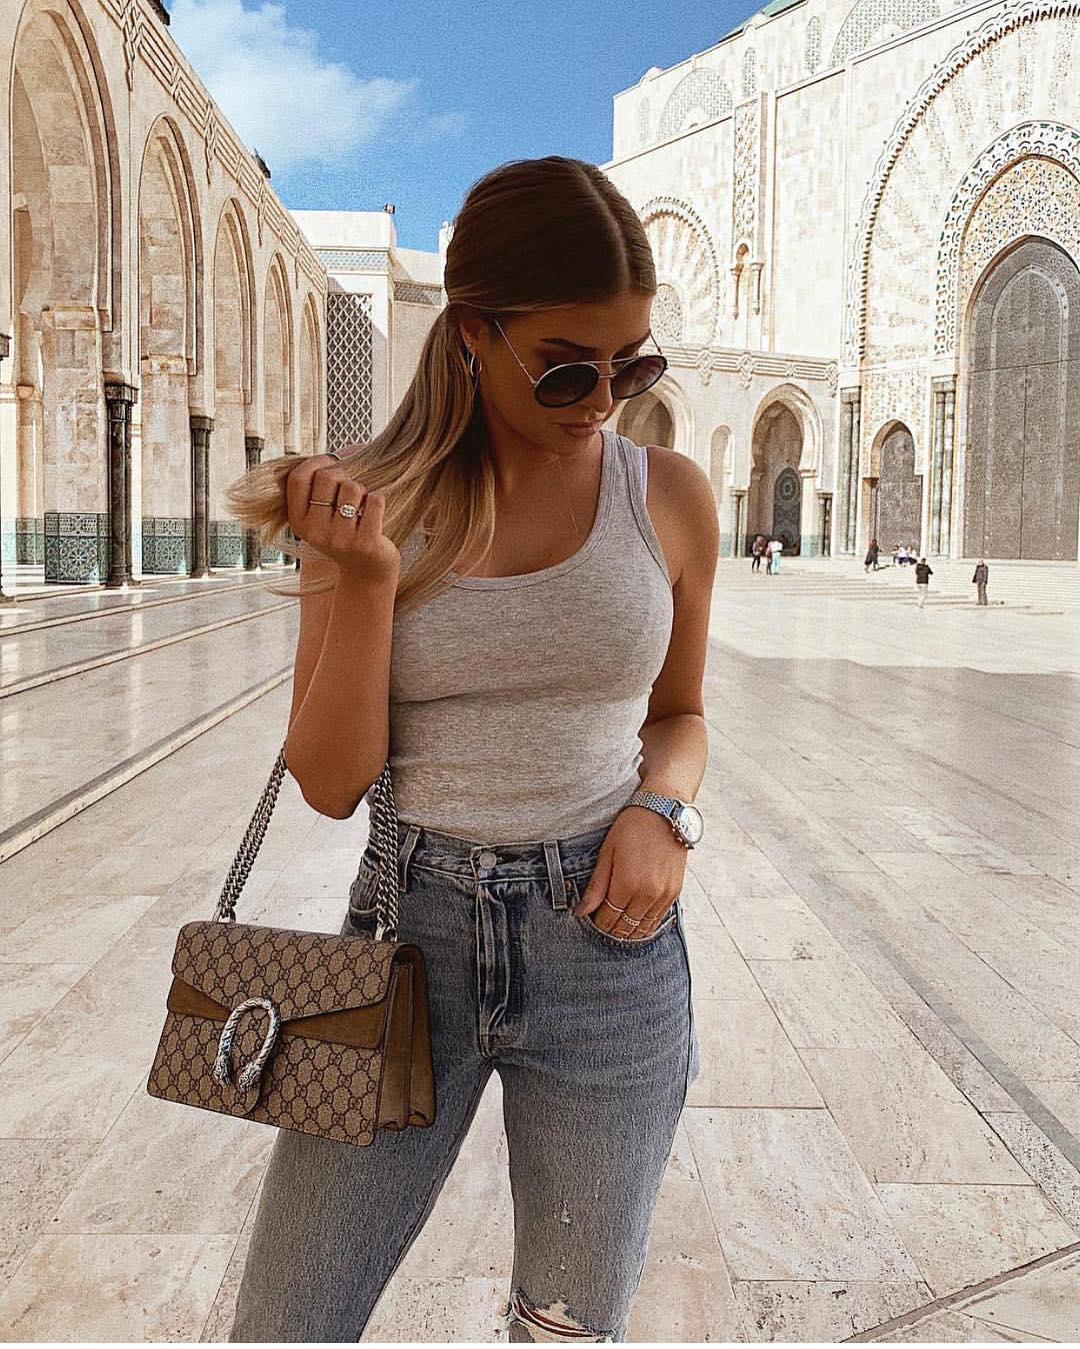 Grey Tank Top And Skinny Jeans In Blue For Summer Basics 2020